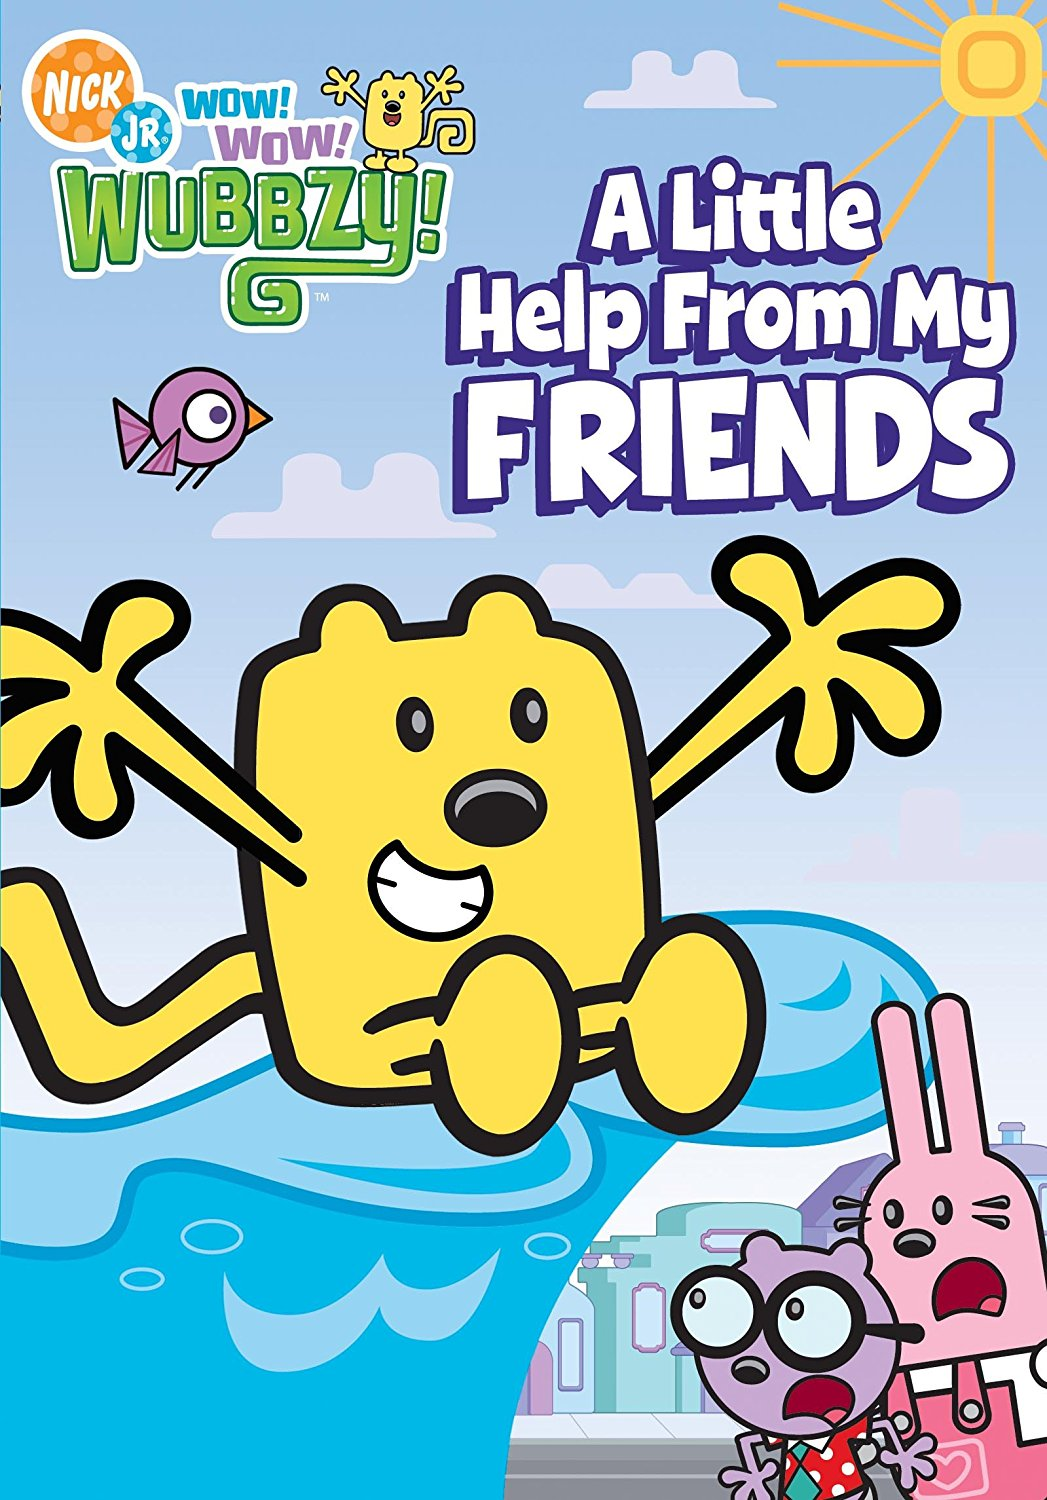 Wubbzy Nick Jr. Wow Wow Wubbzy A Little Help From My Friends